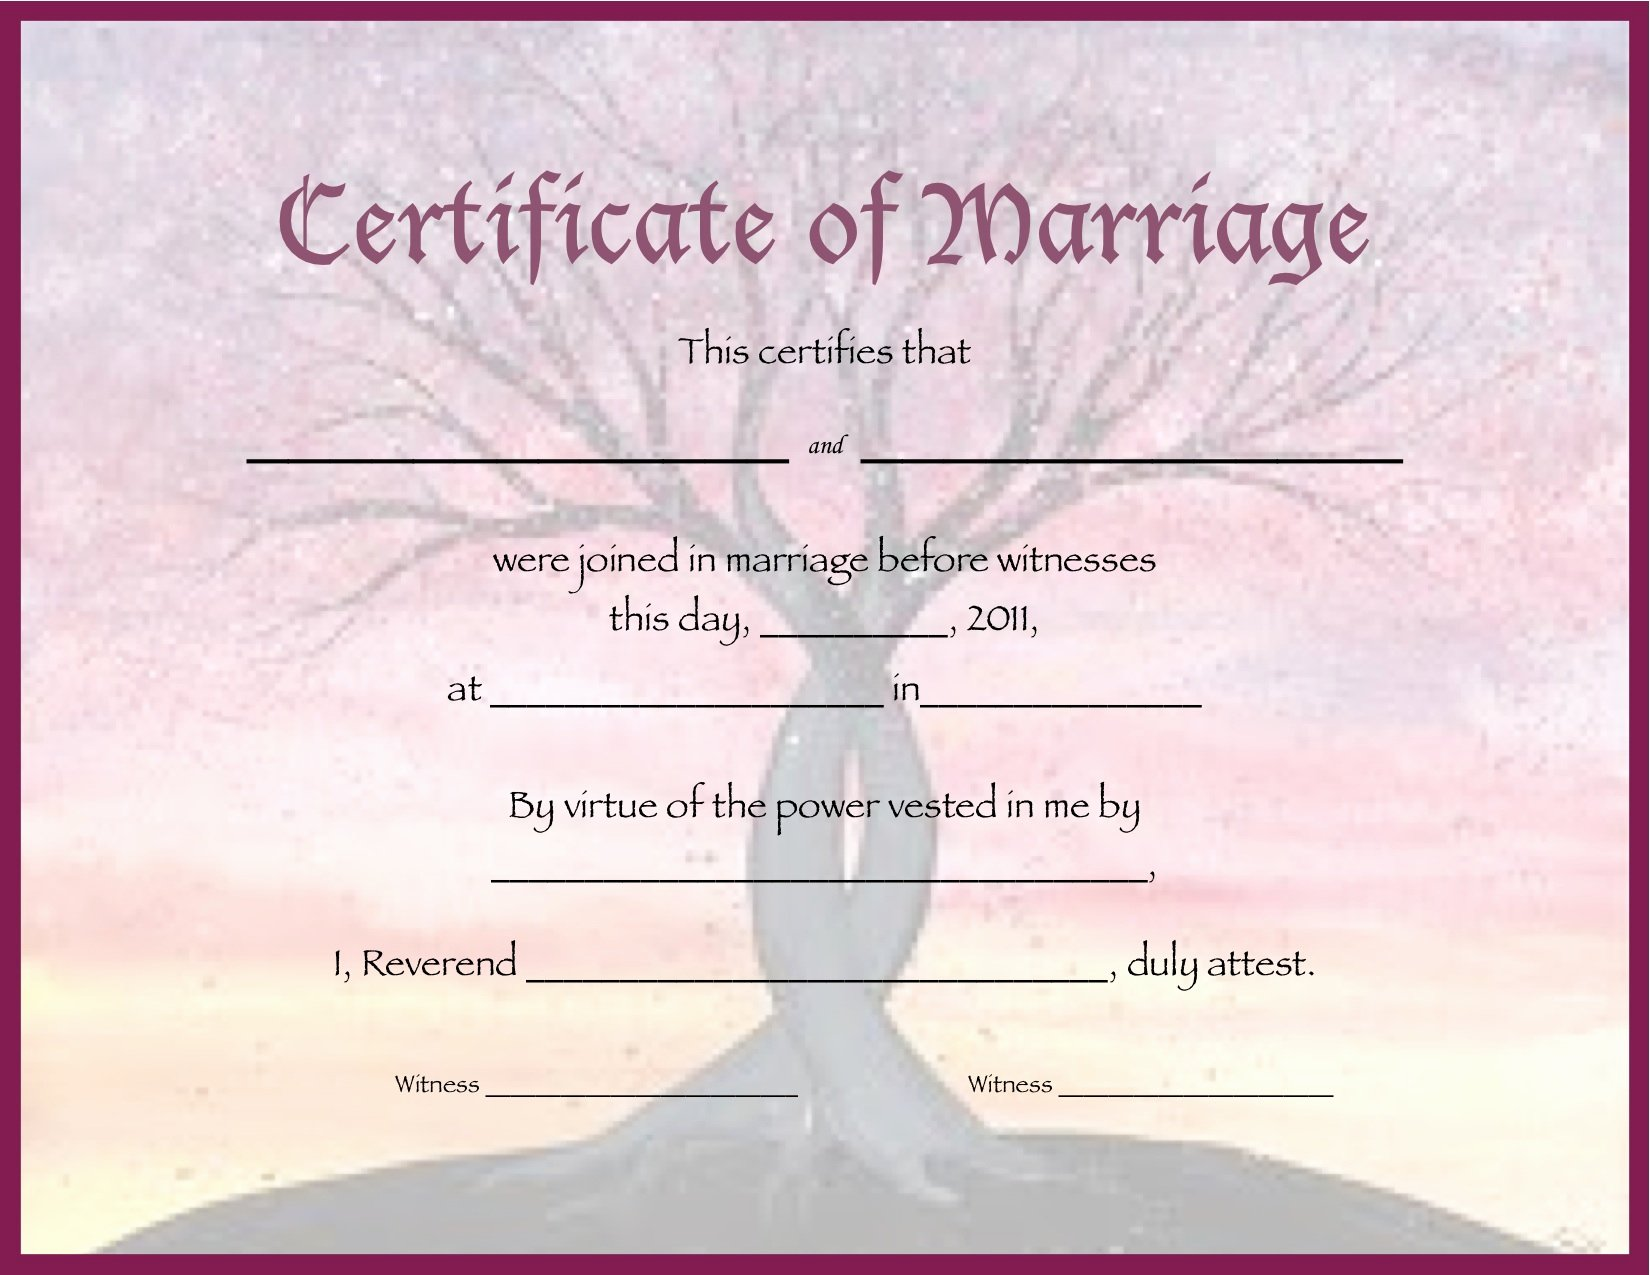 Sample Of Marriage Certificates Inspirational Here is Easy Way to Find Out How to Apply for Marriage Certificate In India – Live Uttar Pradesh